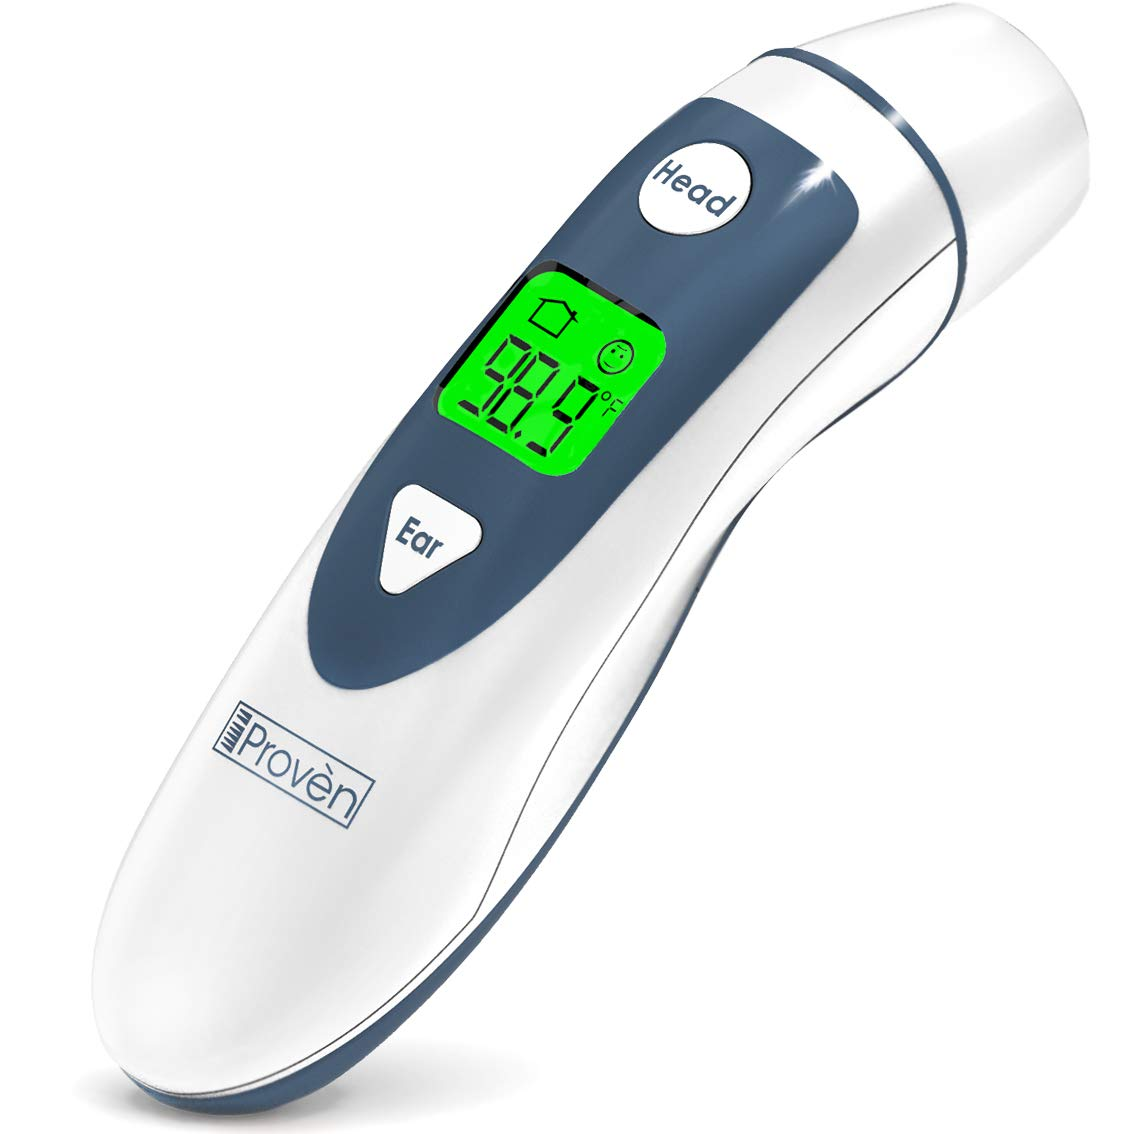 Ear Thermometer with Forehead Function - FDA Approved for Baby and Adults - iProven DMT-489 - Upgraded Infrared Lens Technology for Better Accuracy - New Medical Algorithm (White Grey)